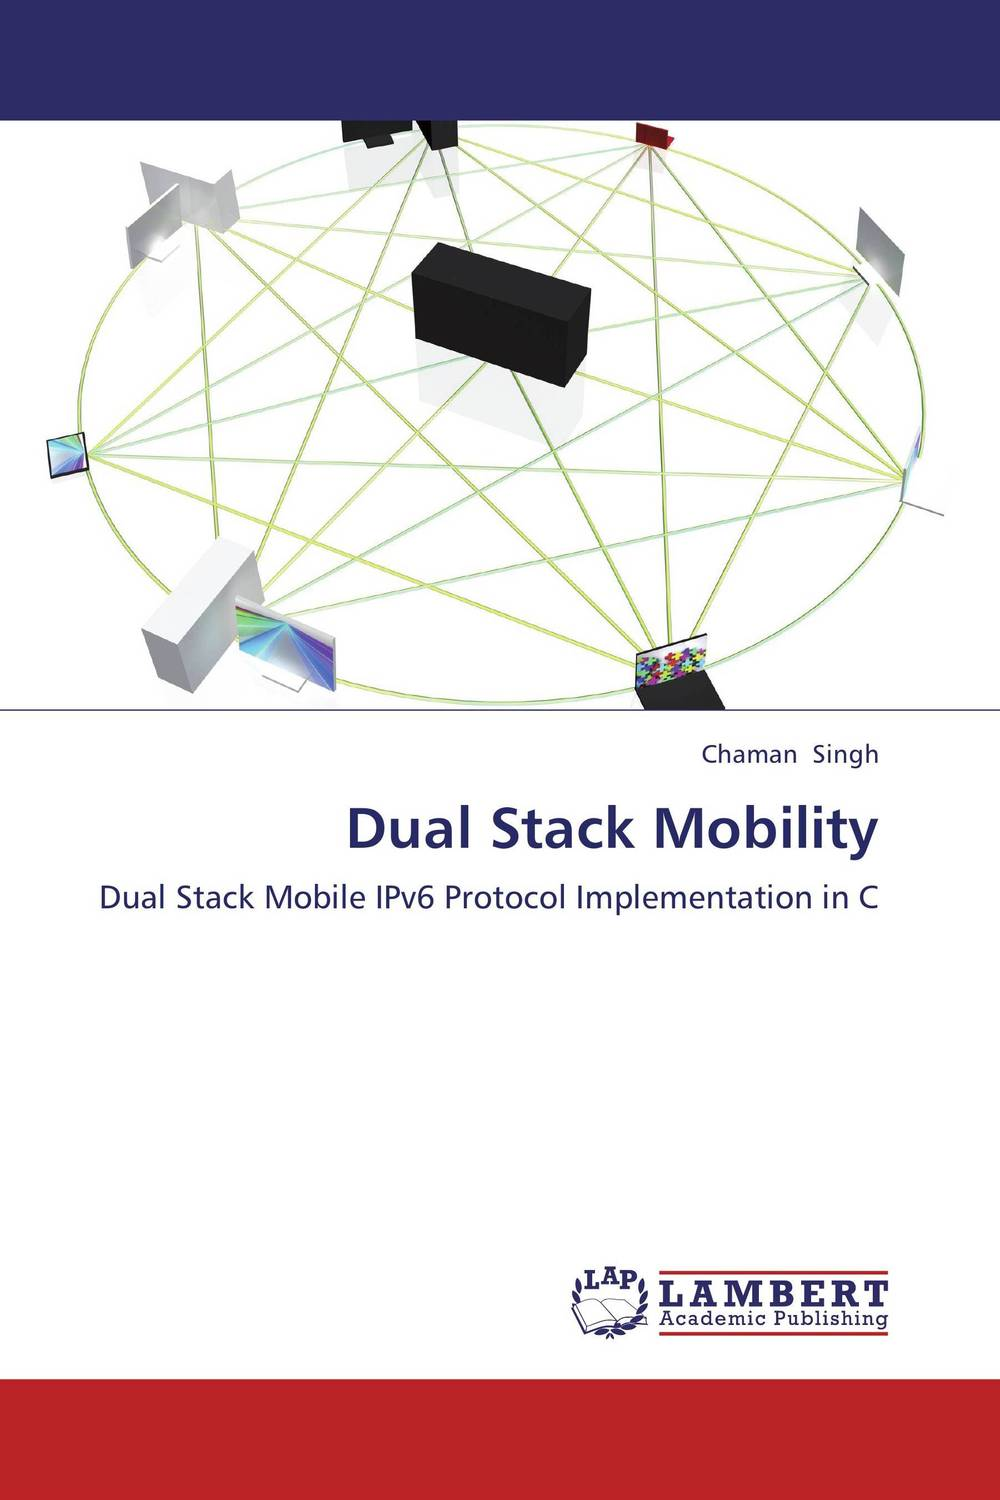 Dual Stack Mobility